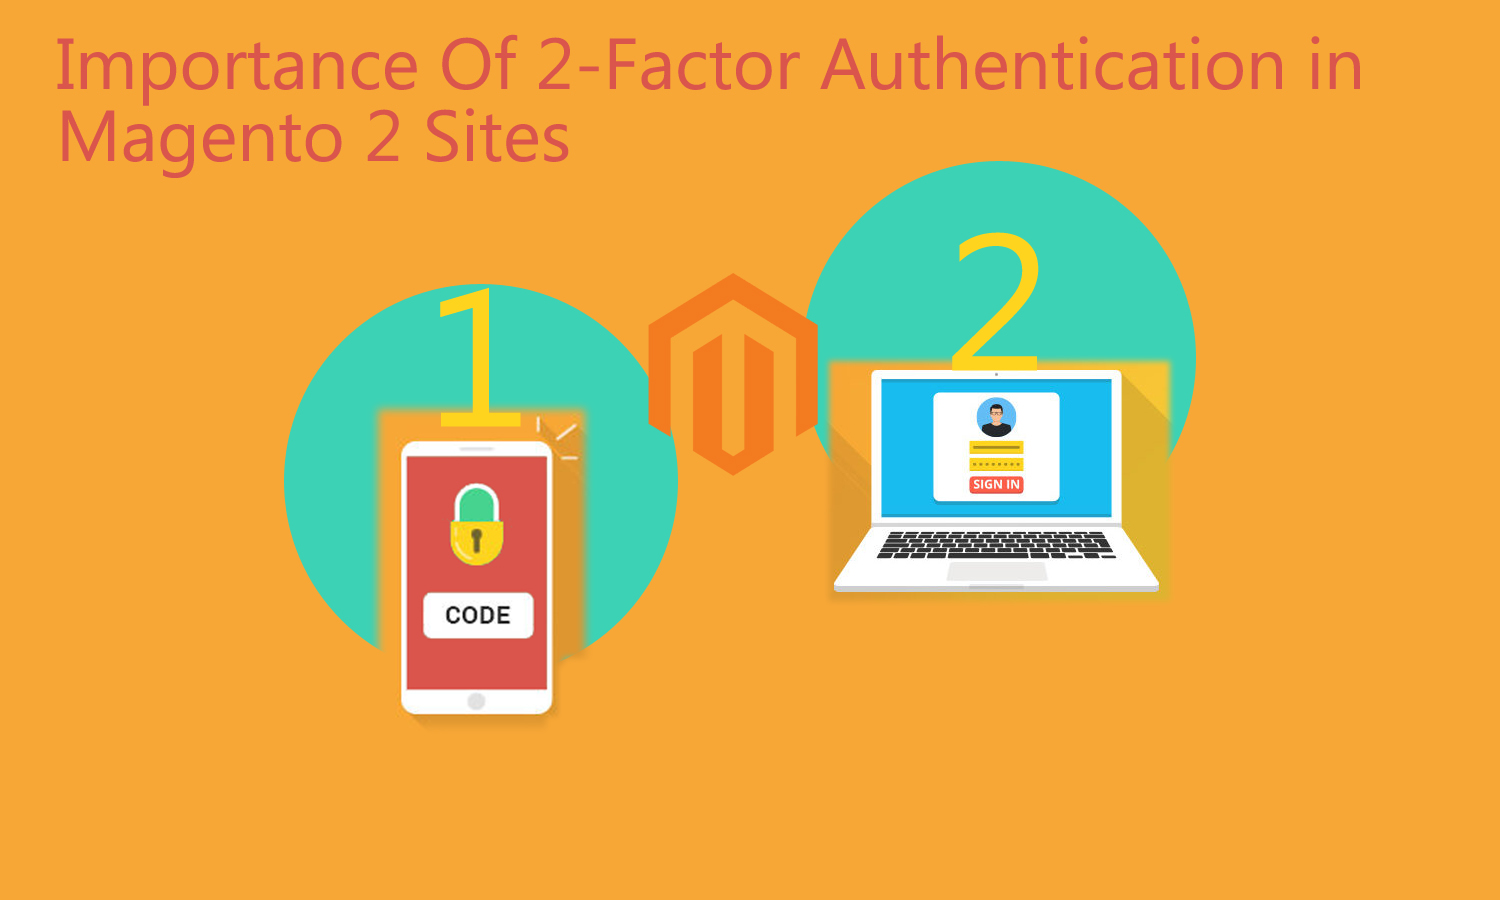 importance-of-2-factor-authentication-magento-2-sites